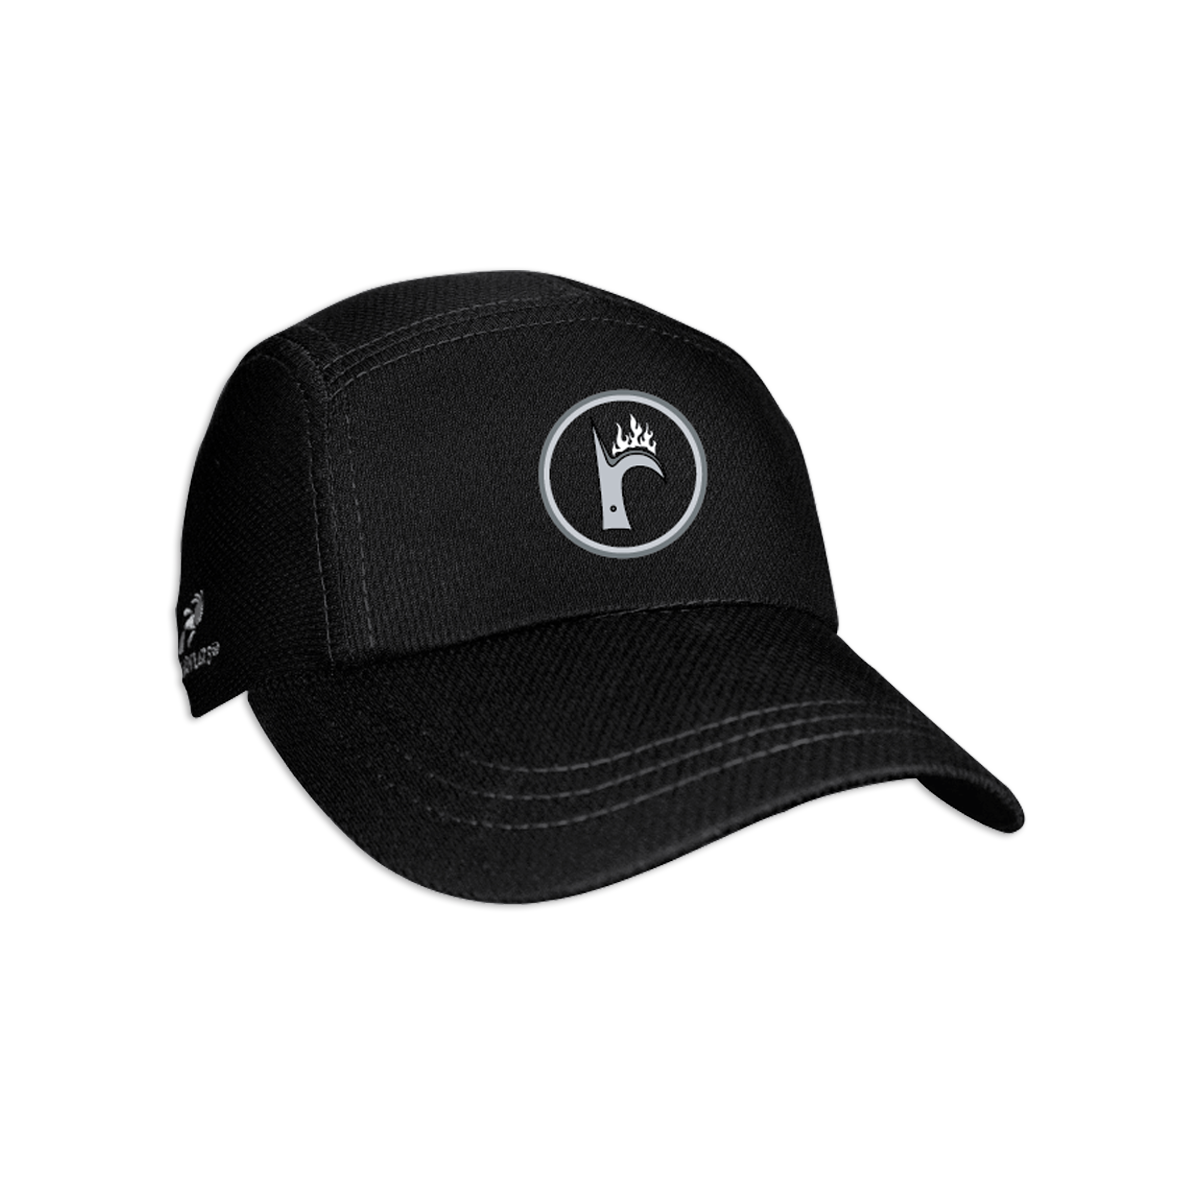 RB Training Cap front